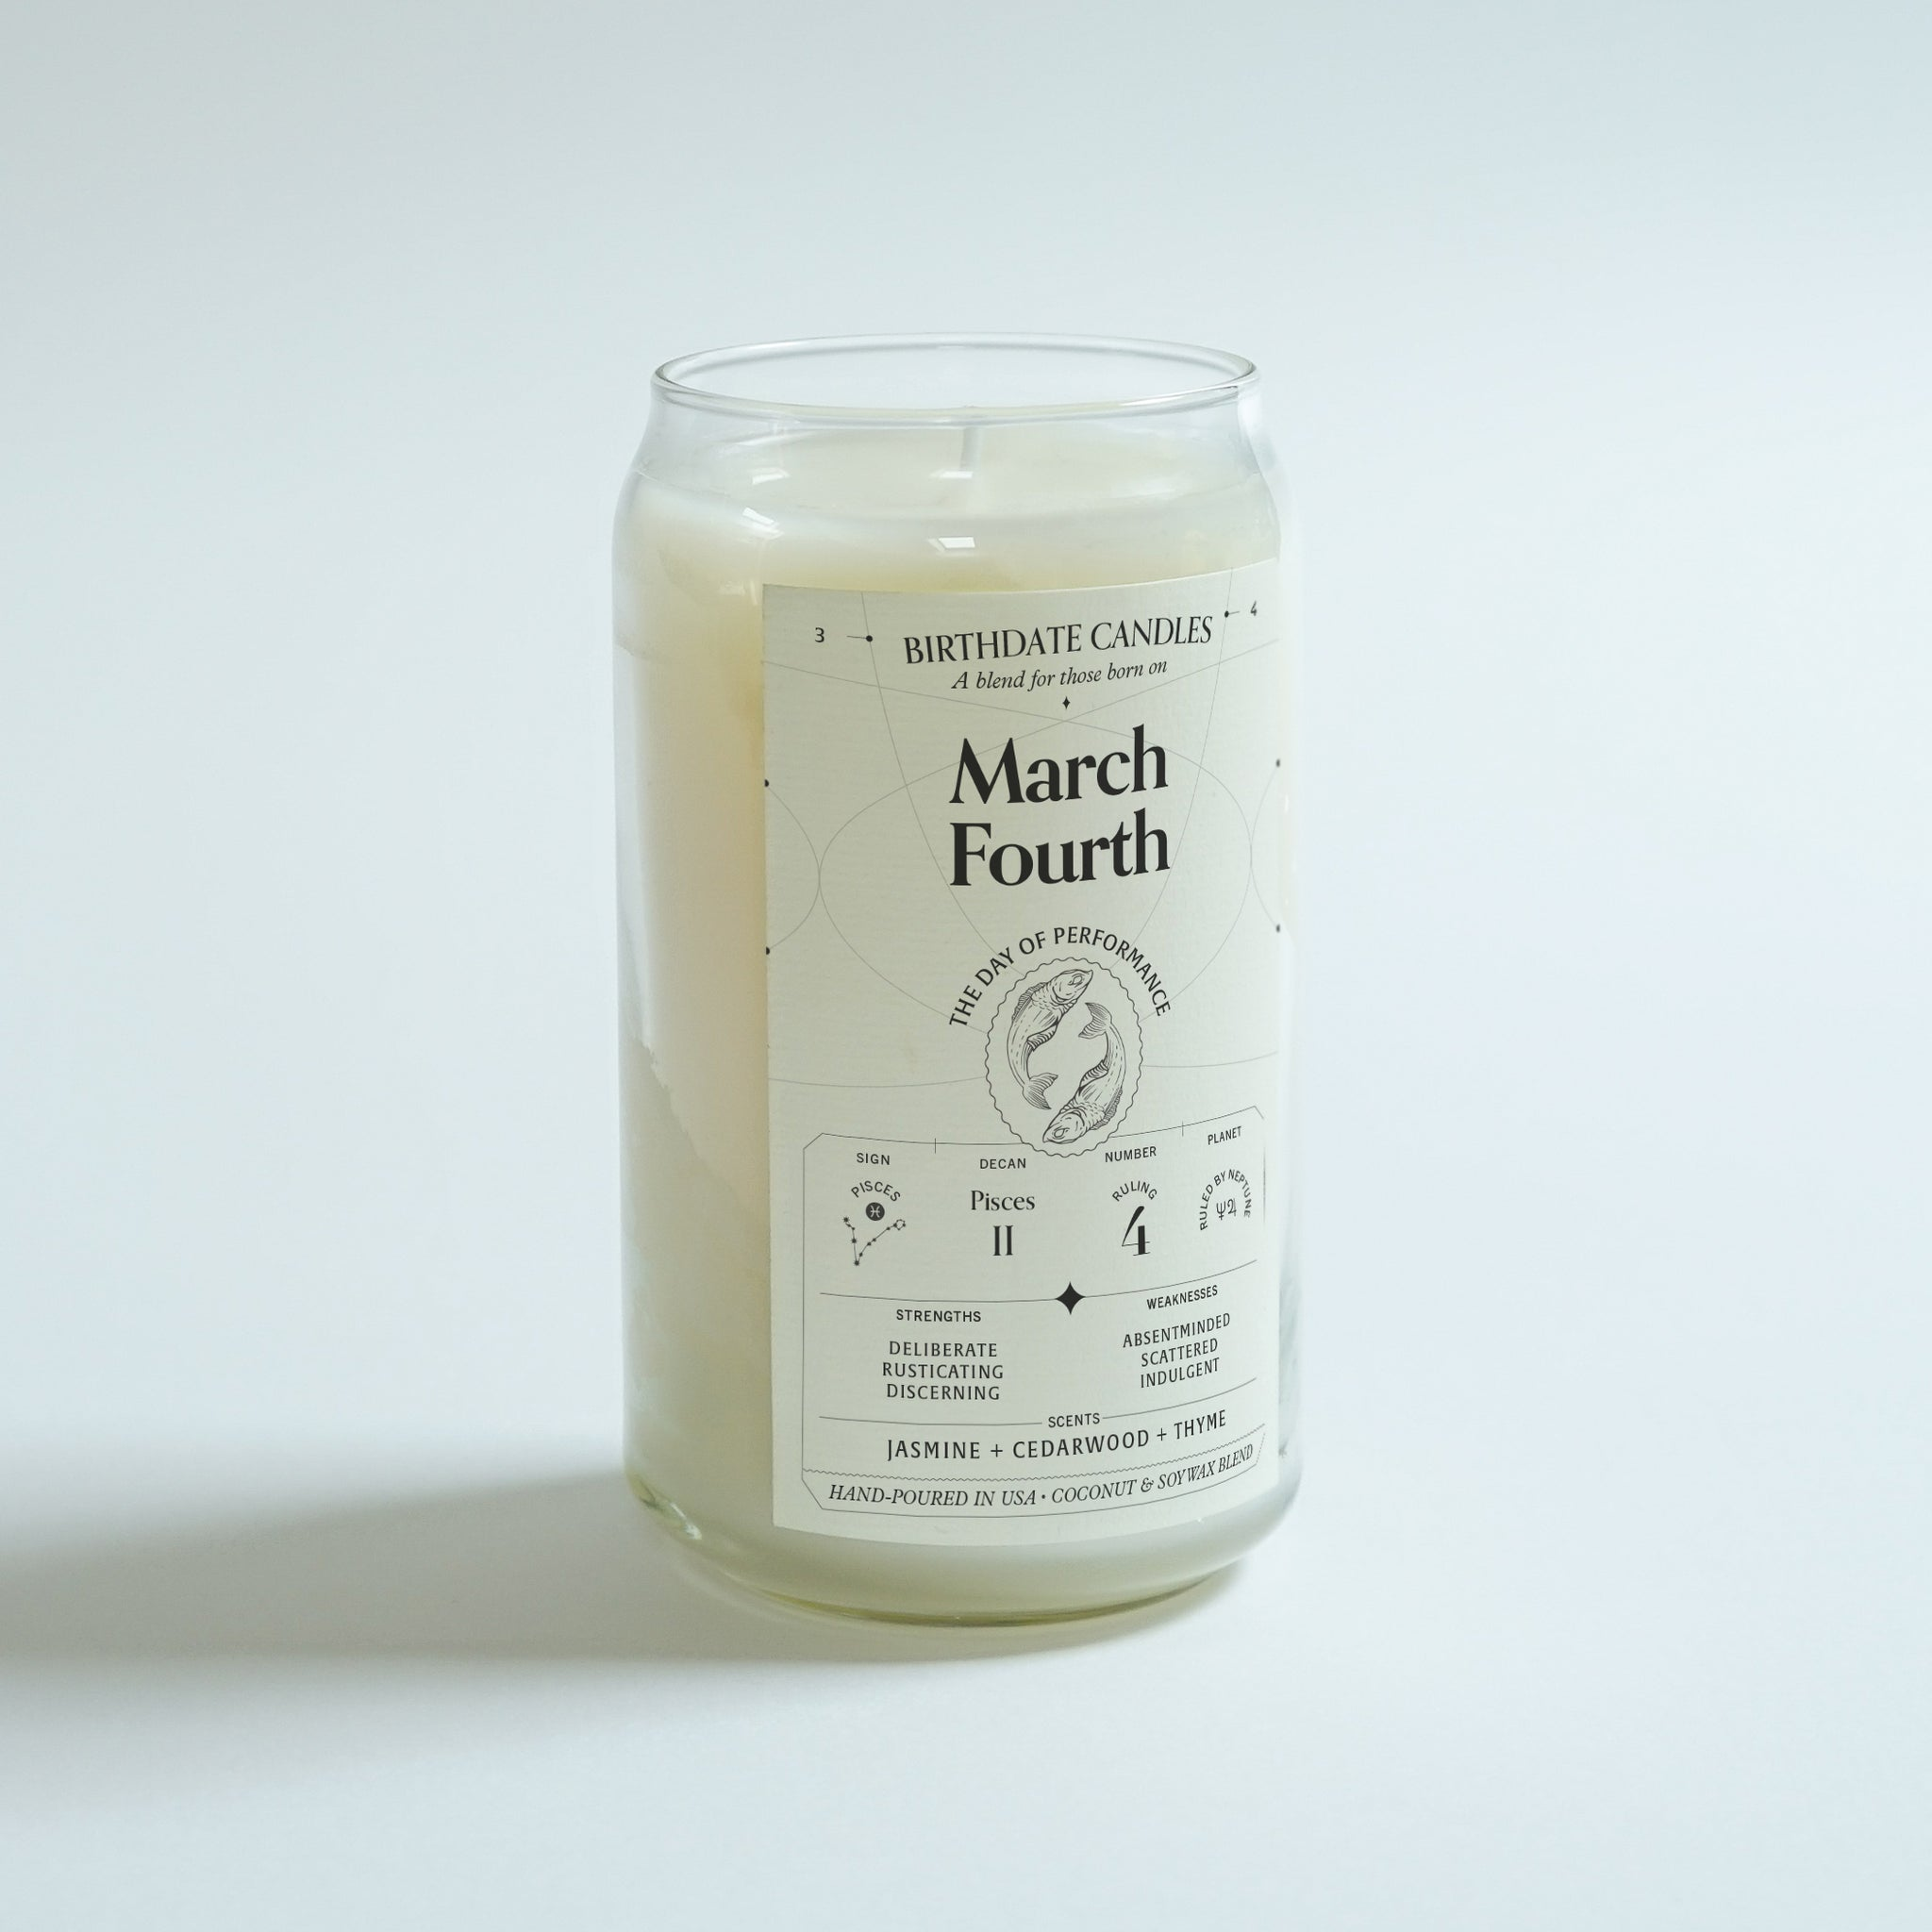 The March Fourth Candle